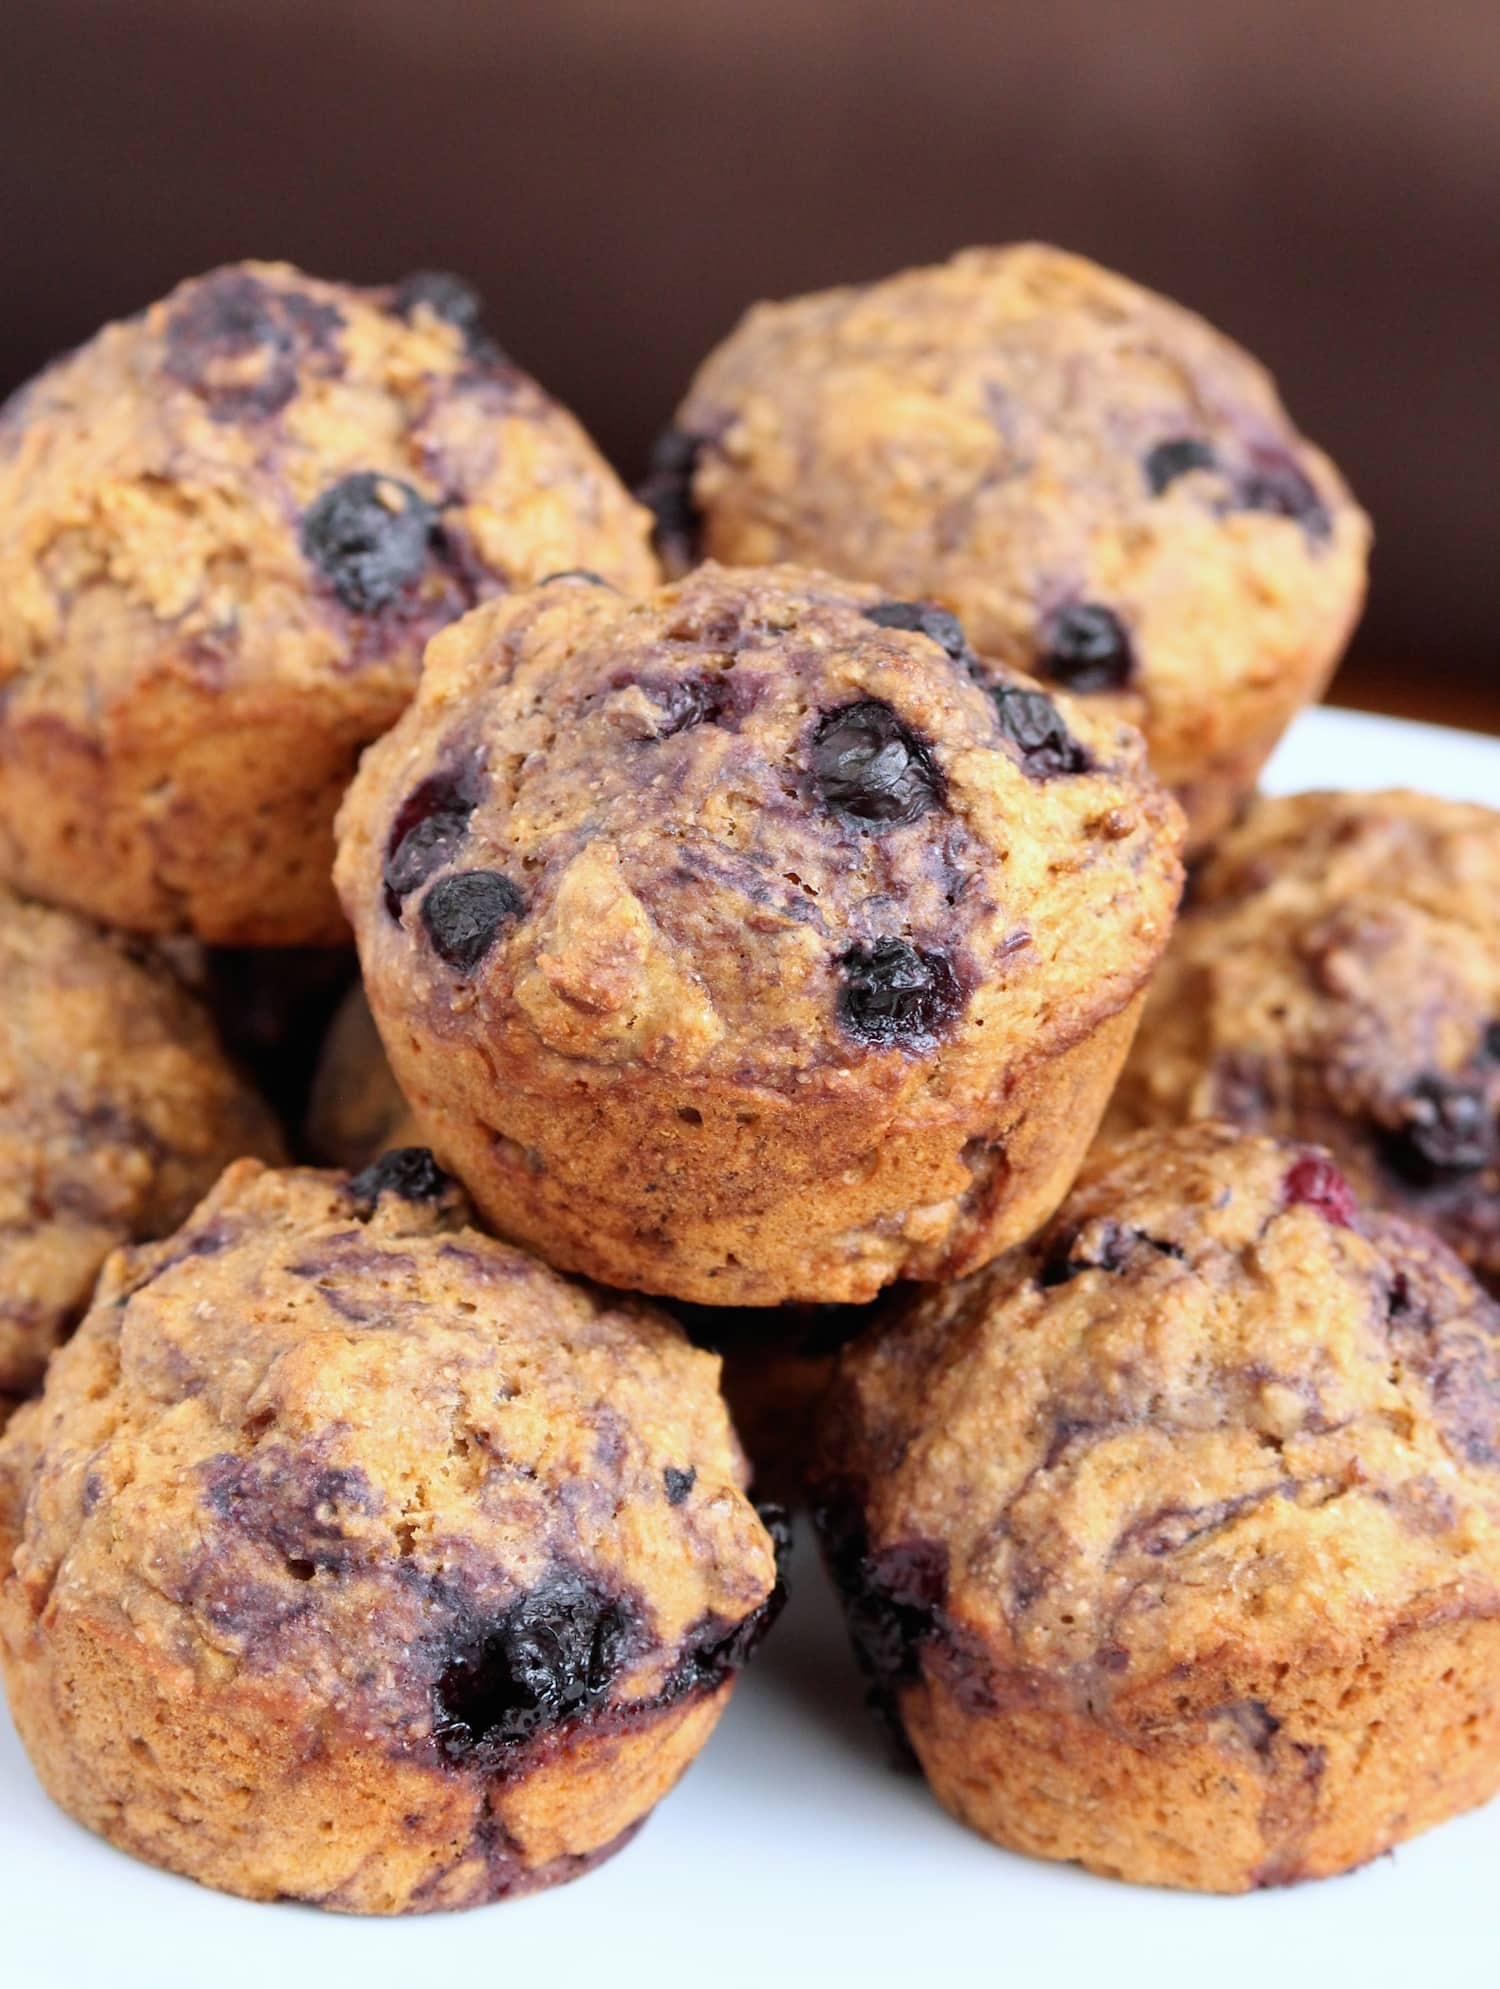 Whole Foods Vegan Blueberry Muffin Ingredients